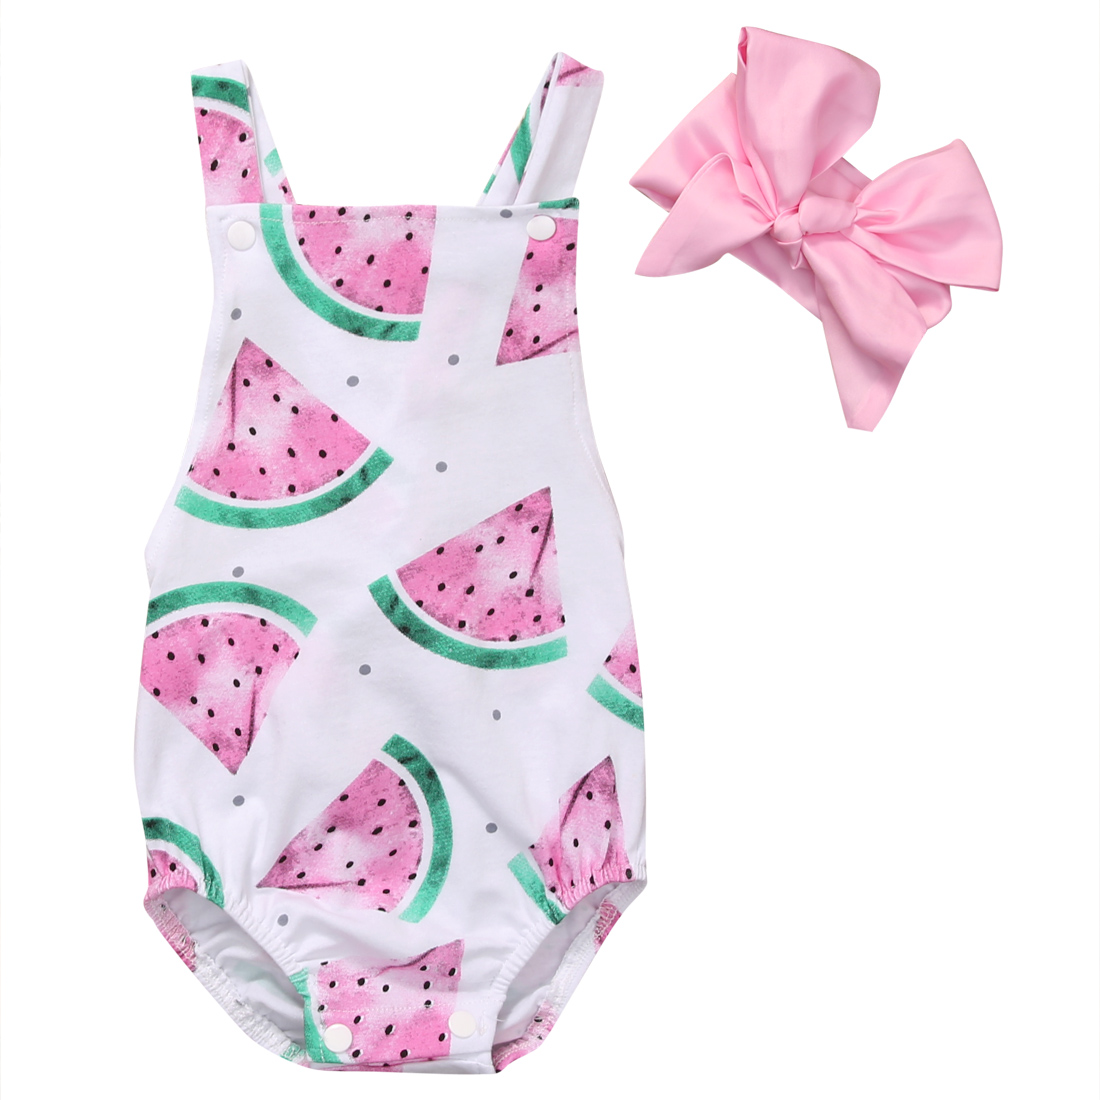 Sweety Baby Girl Rompers Watermelon Newborn Baby Girl Kids Romper Headband Sleeveless Summer Baby Girl Clothes Outfits 0-24M ...